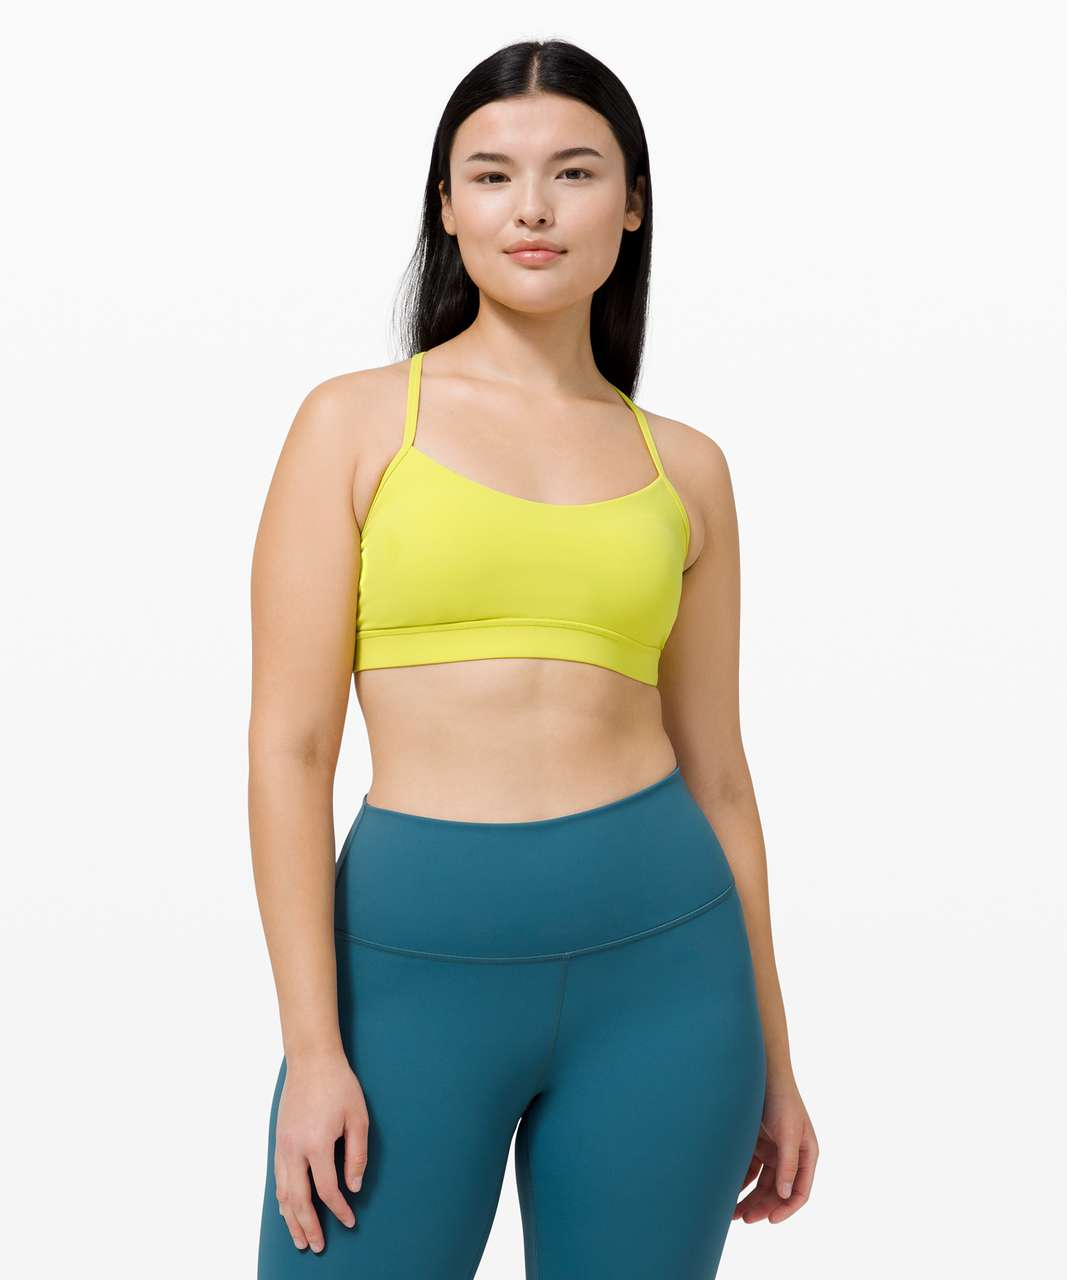 Lululemon Flow Y Bra Nulu *Light Support, B/C Cup - Yellow Serpentine